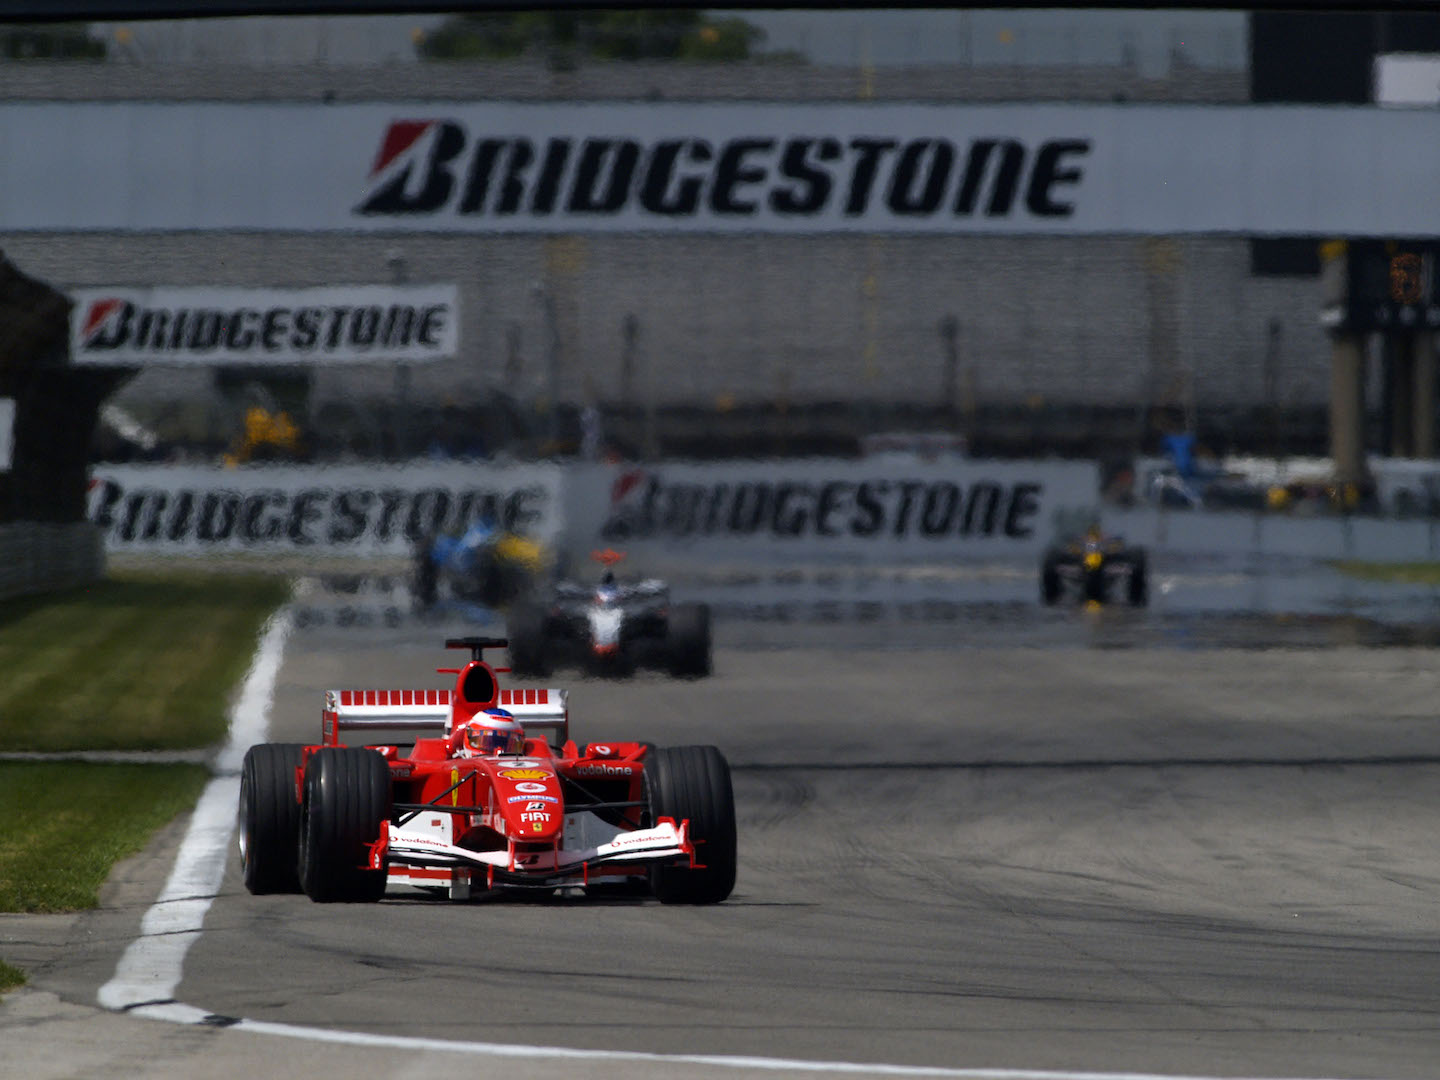 2005 USGP Qualifying